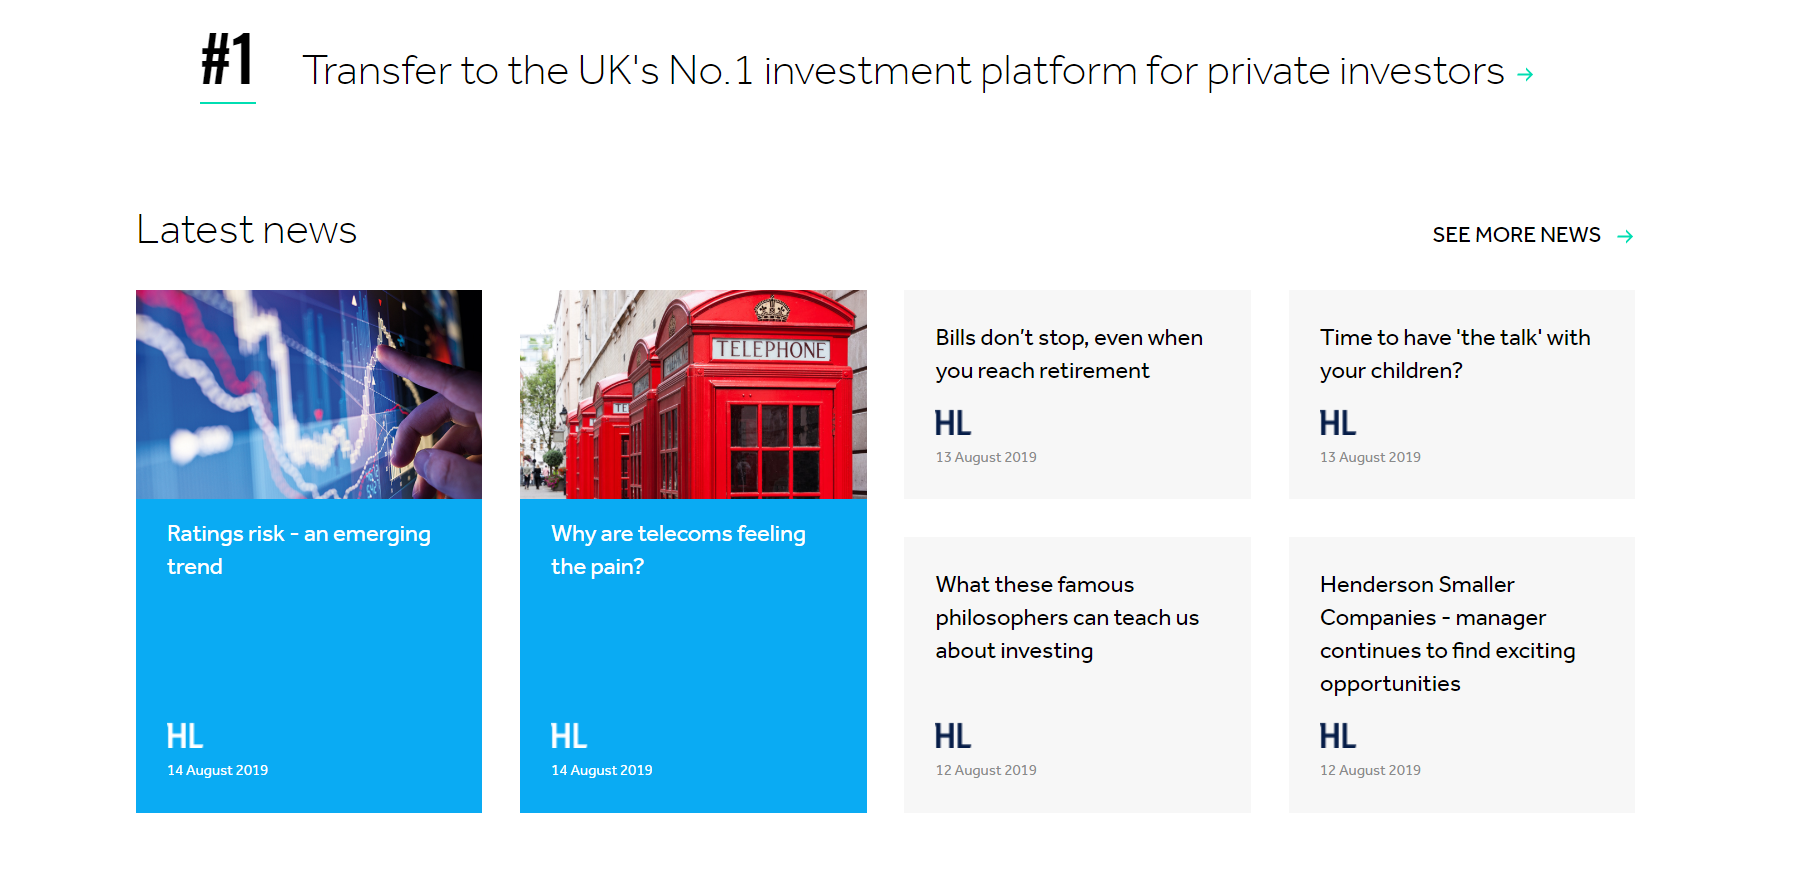 Hargreaves lansdown is UK´s No.1 investment platform